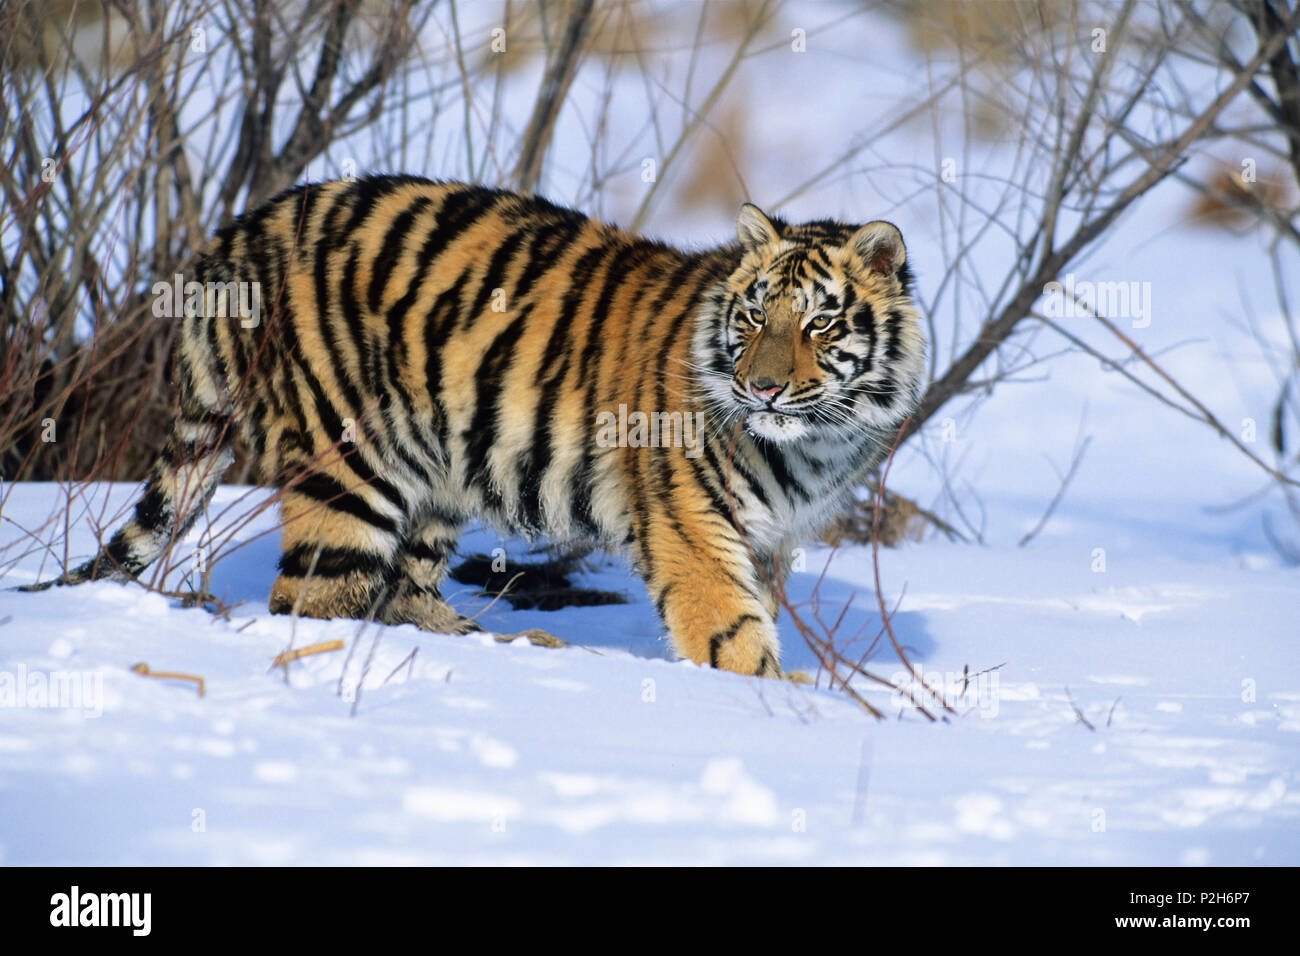 Young Siberian Tiger in snow, Panthera tigris altaica, China, captive - Stock Image